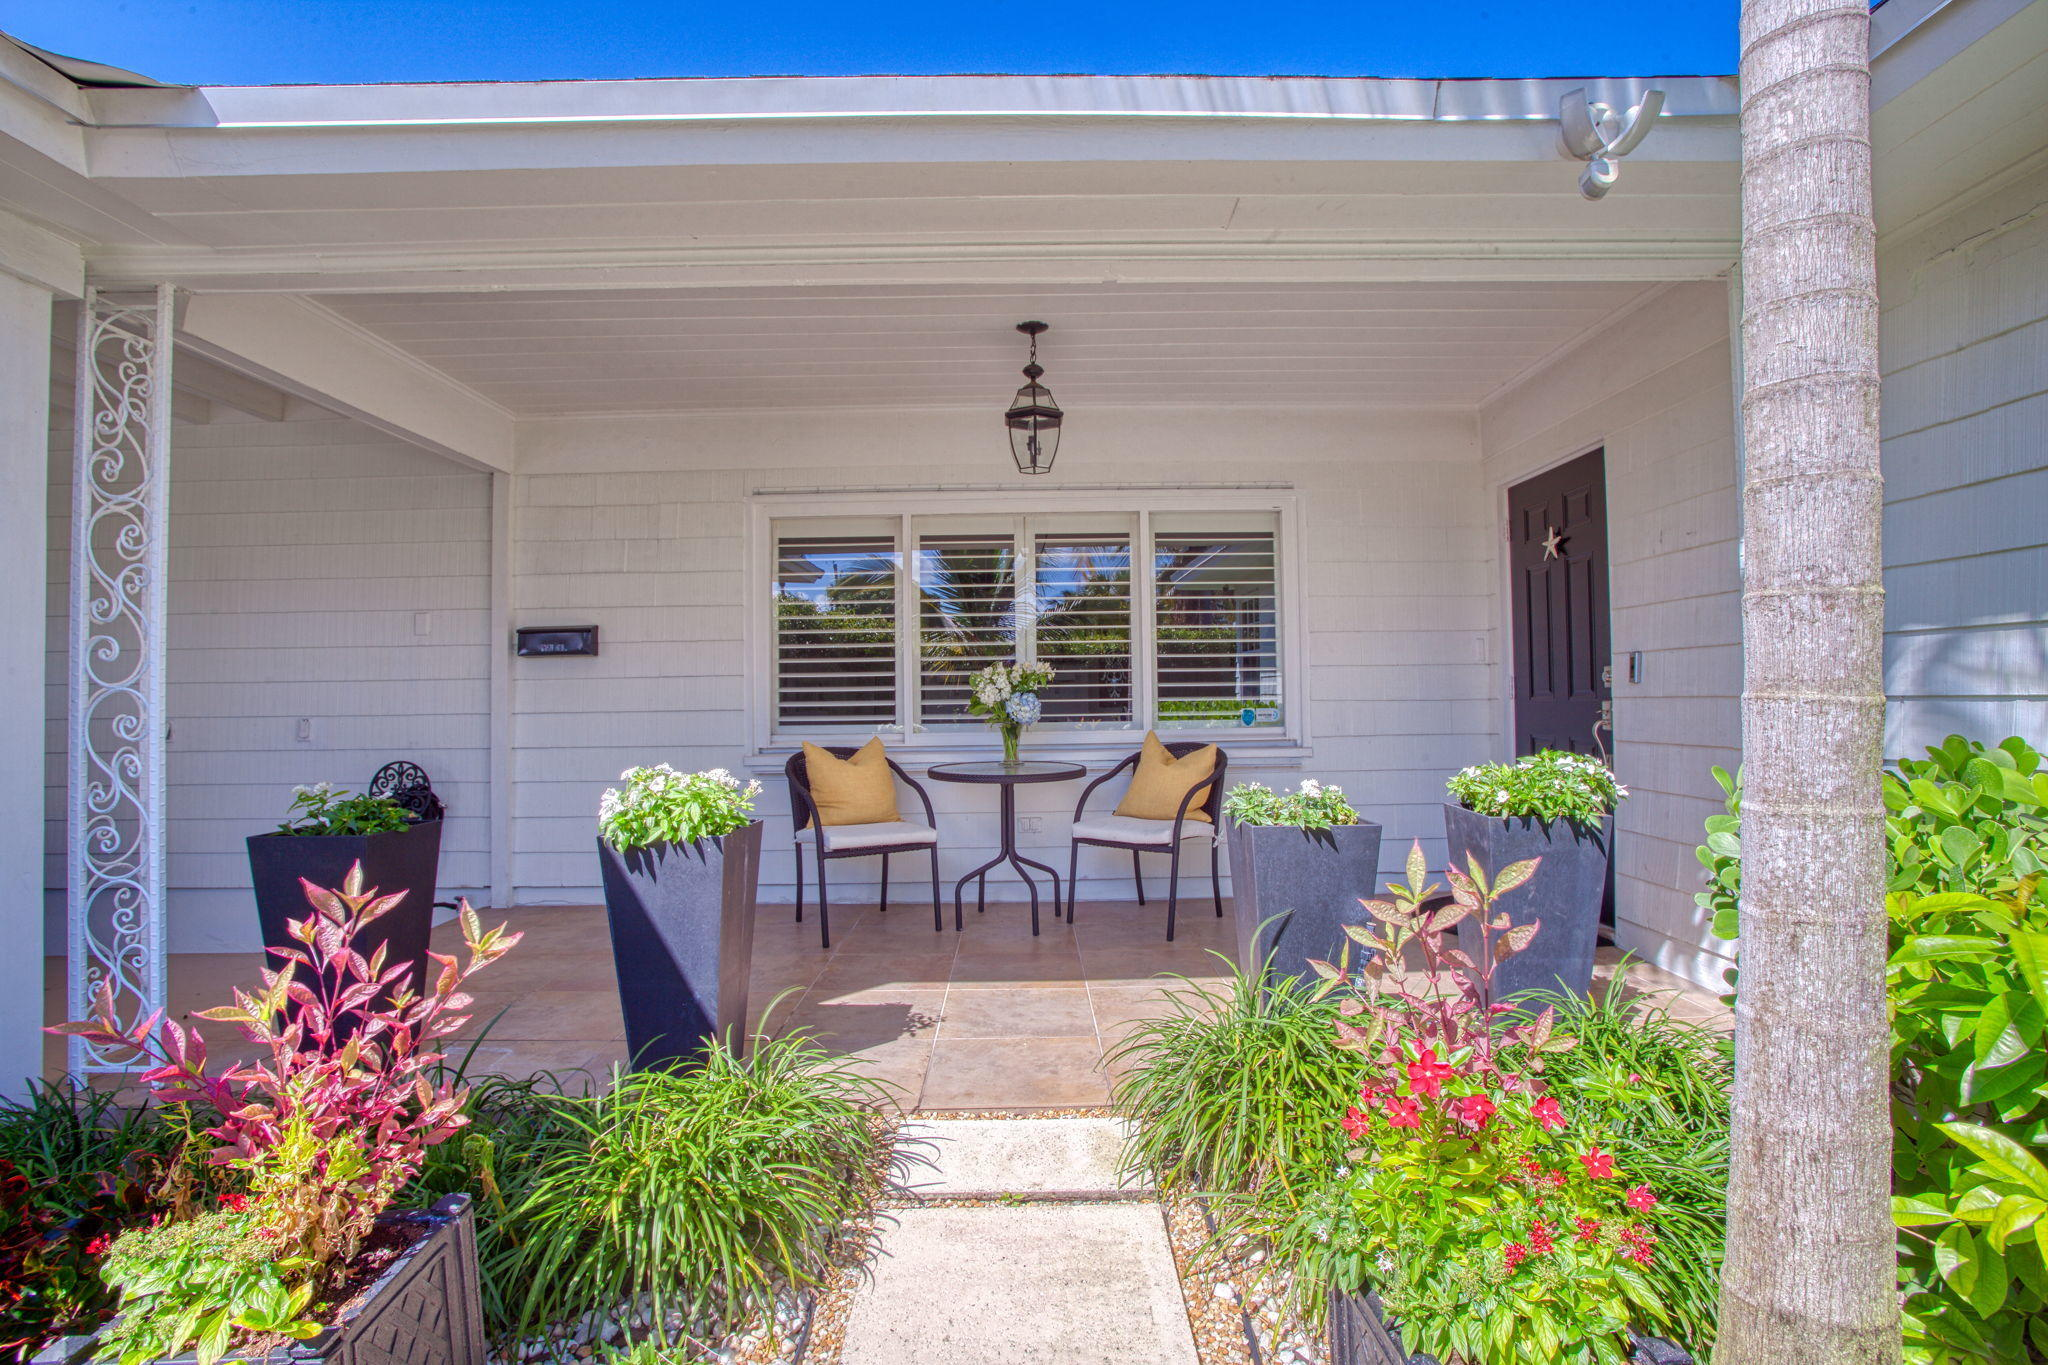 Welcome to this stunning 4-bedroom, 3-bathroom home in the charming SoSo district of West Palm Beach. Enjoy being close enough to downtown without the hustle and bustle, and only four miles away from Palm Beach Island. This home has been immaculately maintained. The master suite has a private entrance into the backyard where it overlooks a turquoise pool and lush landscaping. Lovely gardens and patios surround the back yard which has a bonus, a pool cabana for entertaining with an outside bar area with seating. Imagine the sun setting through the palms while you have dinner for two on one of your patios. Beautiful hard wood floors, a renovated bathroom in the 2nd master suite, this home has been outfitted with a water purification system throughout. The two-car carport will protect the vehicles from the Florida elements.   Book your private tour today.